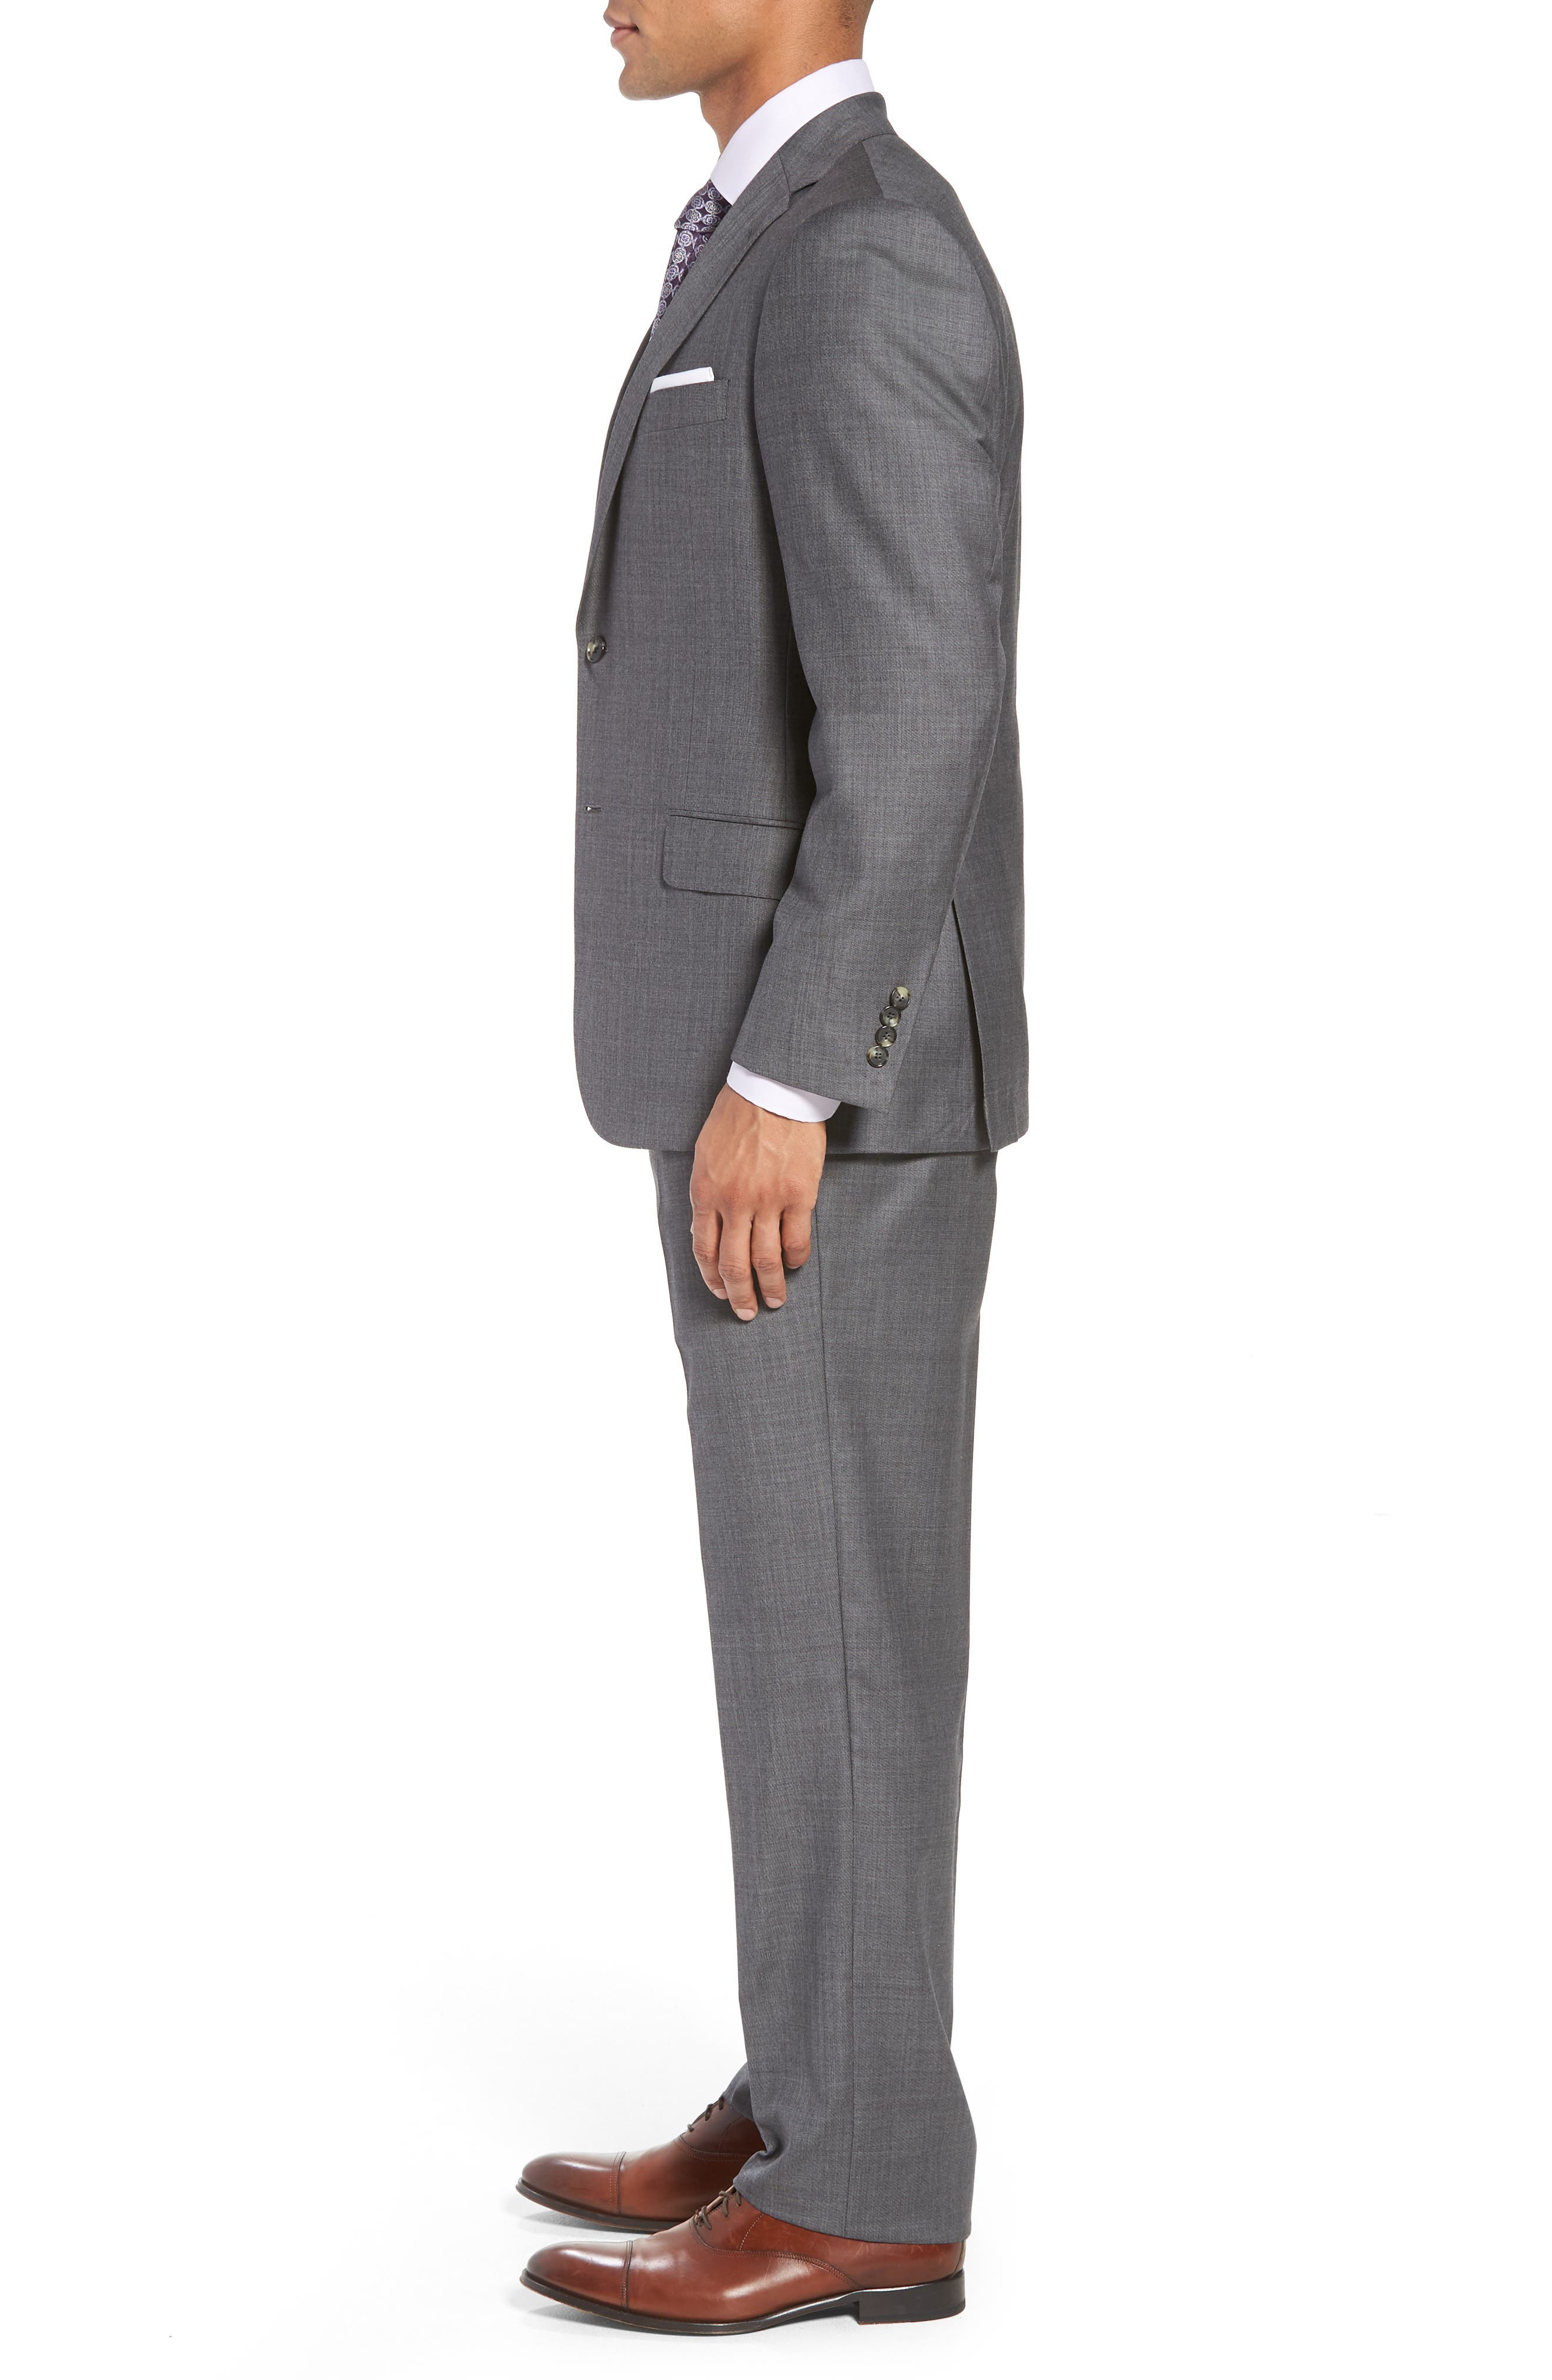 HICKEY FREEMAN,                             Classic B Fit Solid Wool Suit,                             Alternate thumbnail 3, color,                             020